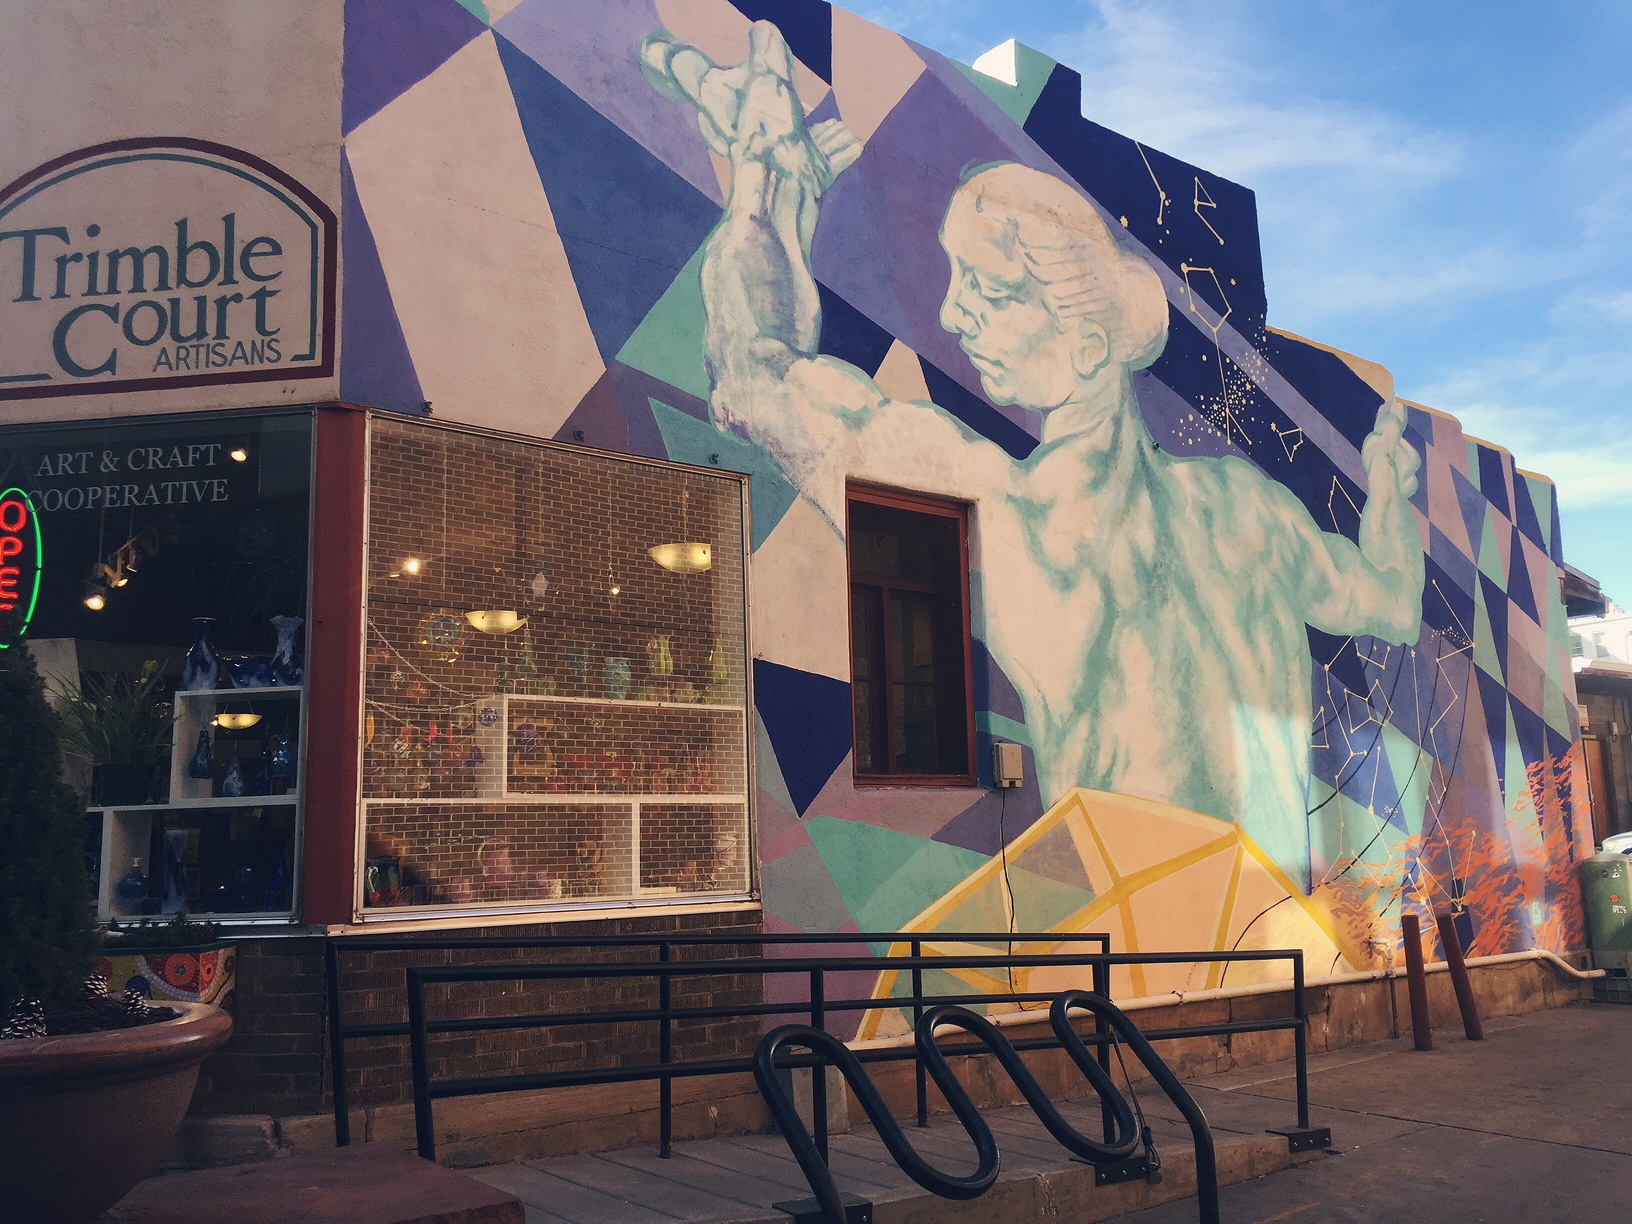 Best Instagram Murals in Fort Collins, CO | Emily Malkowski | Travel & Lifestyle Blogger